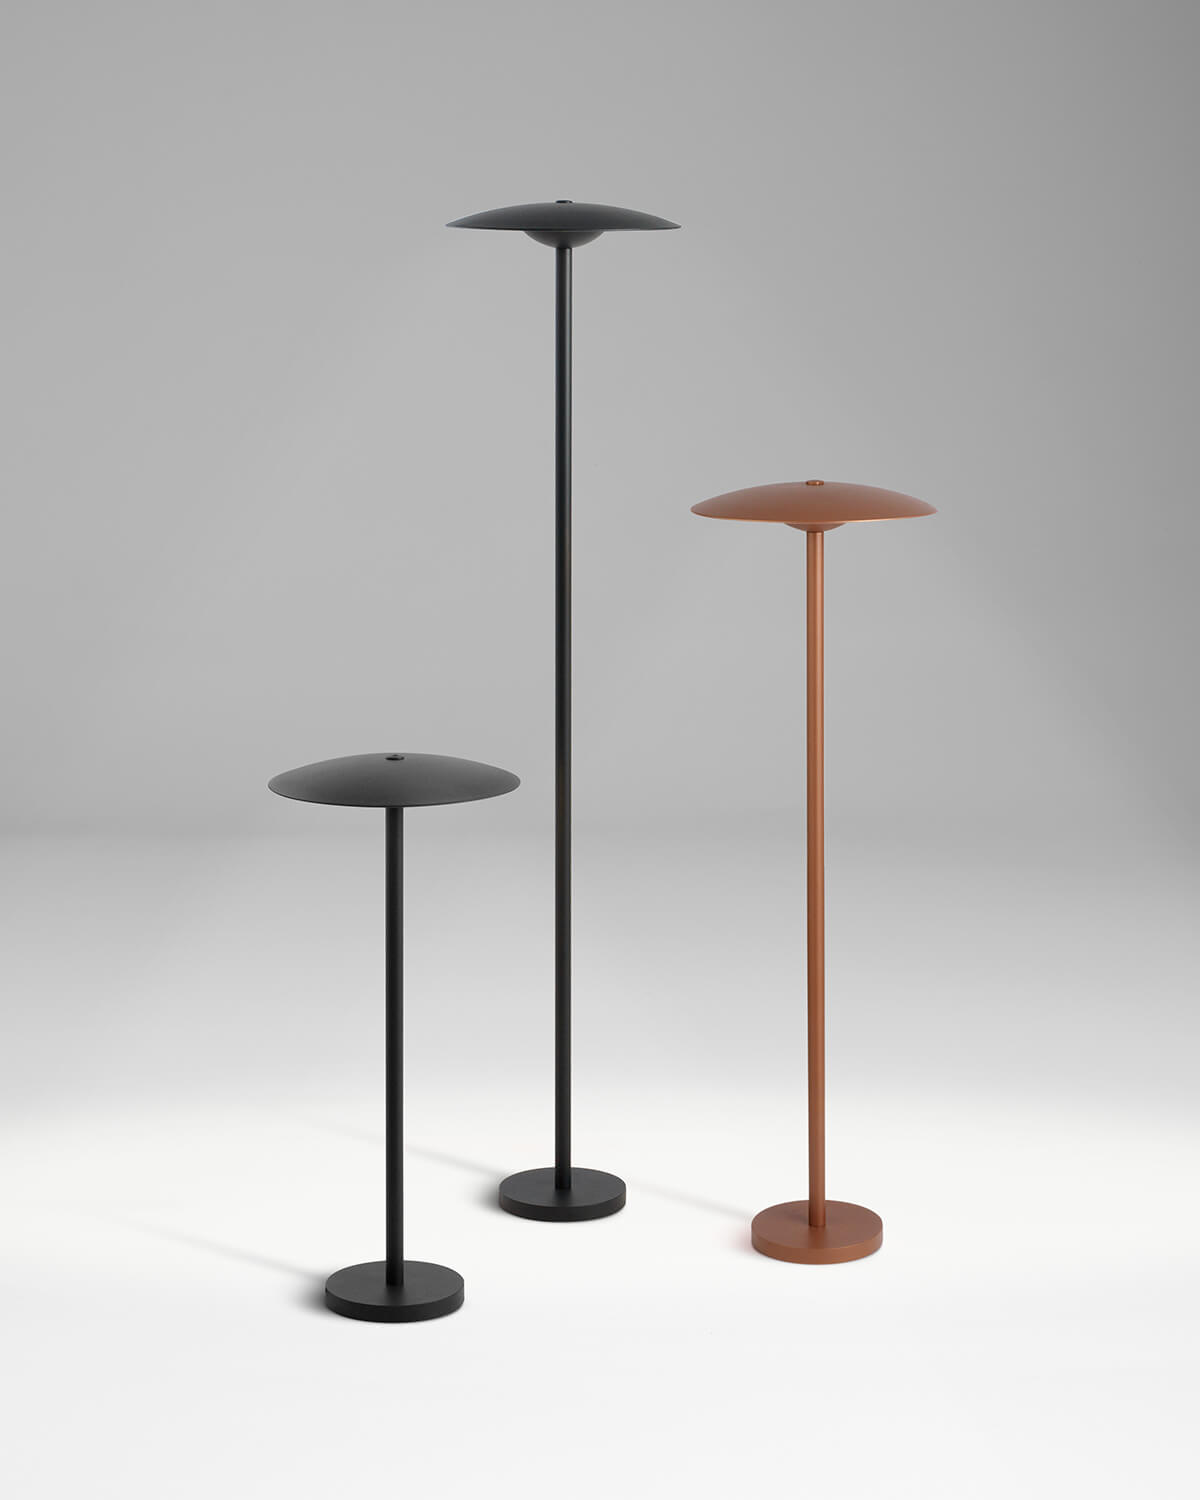 Large black, medium brown, and small black Ginger Bollard lamps arranged in a cluster on plain grey background